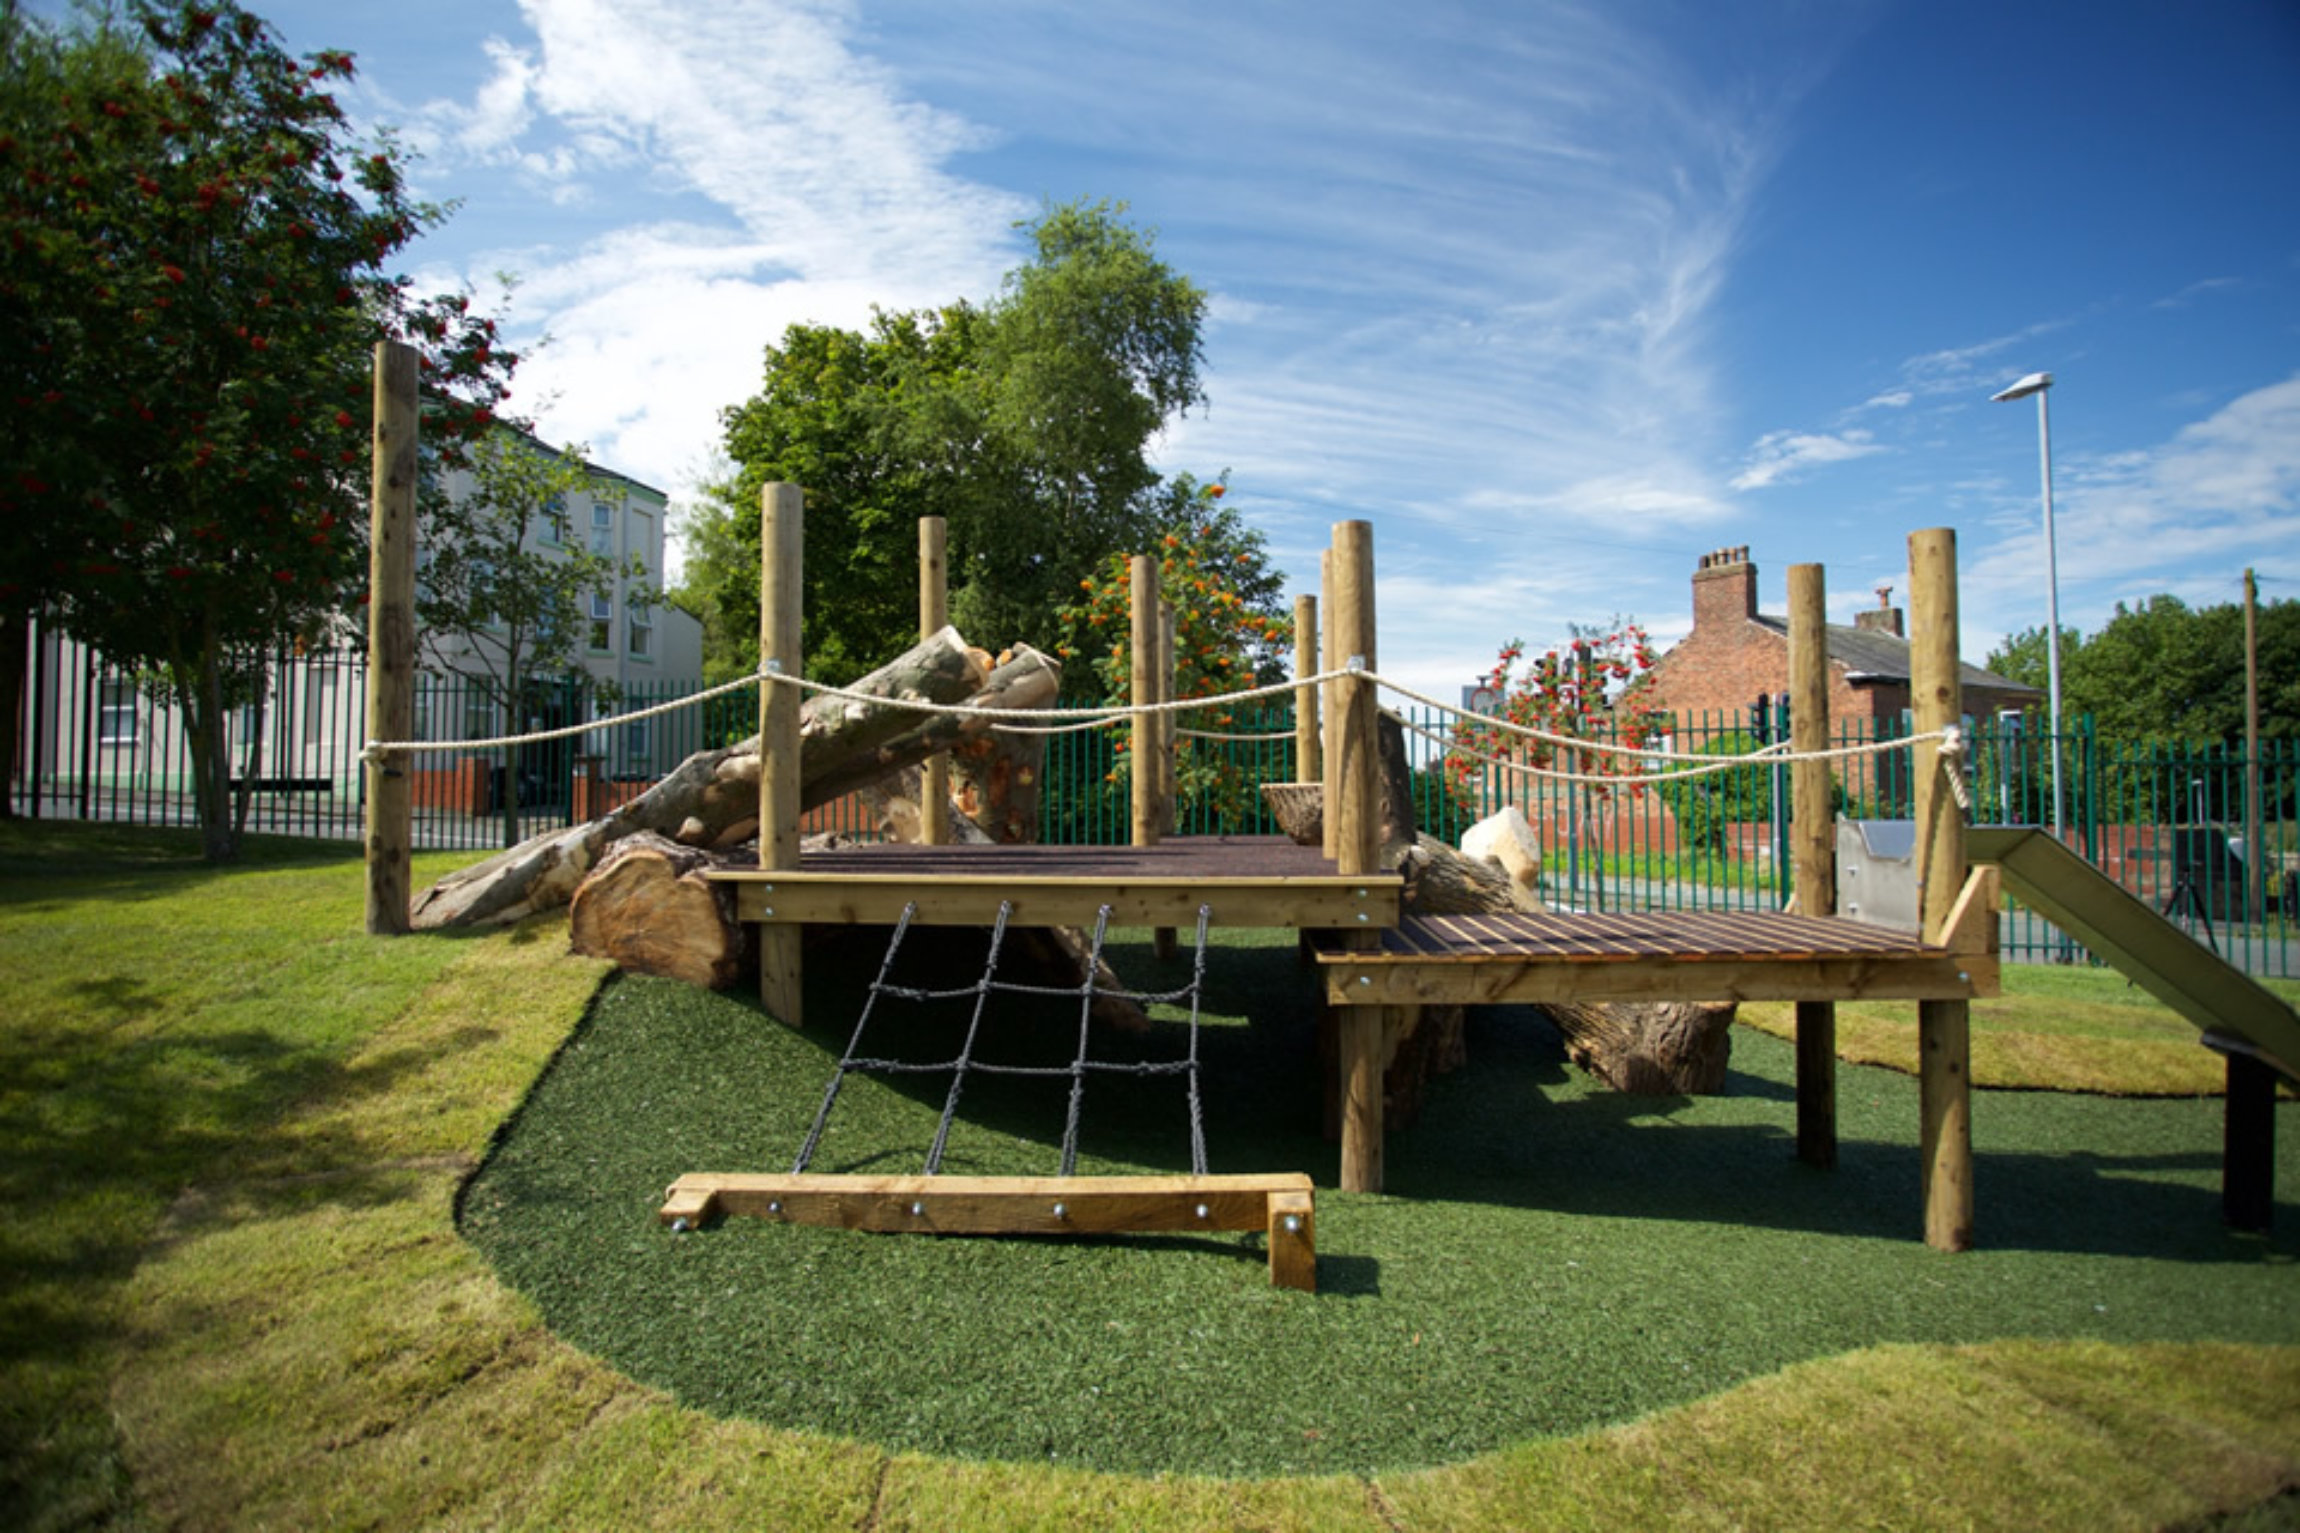 Risk and challenge in Primary School outdoor environments